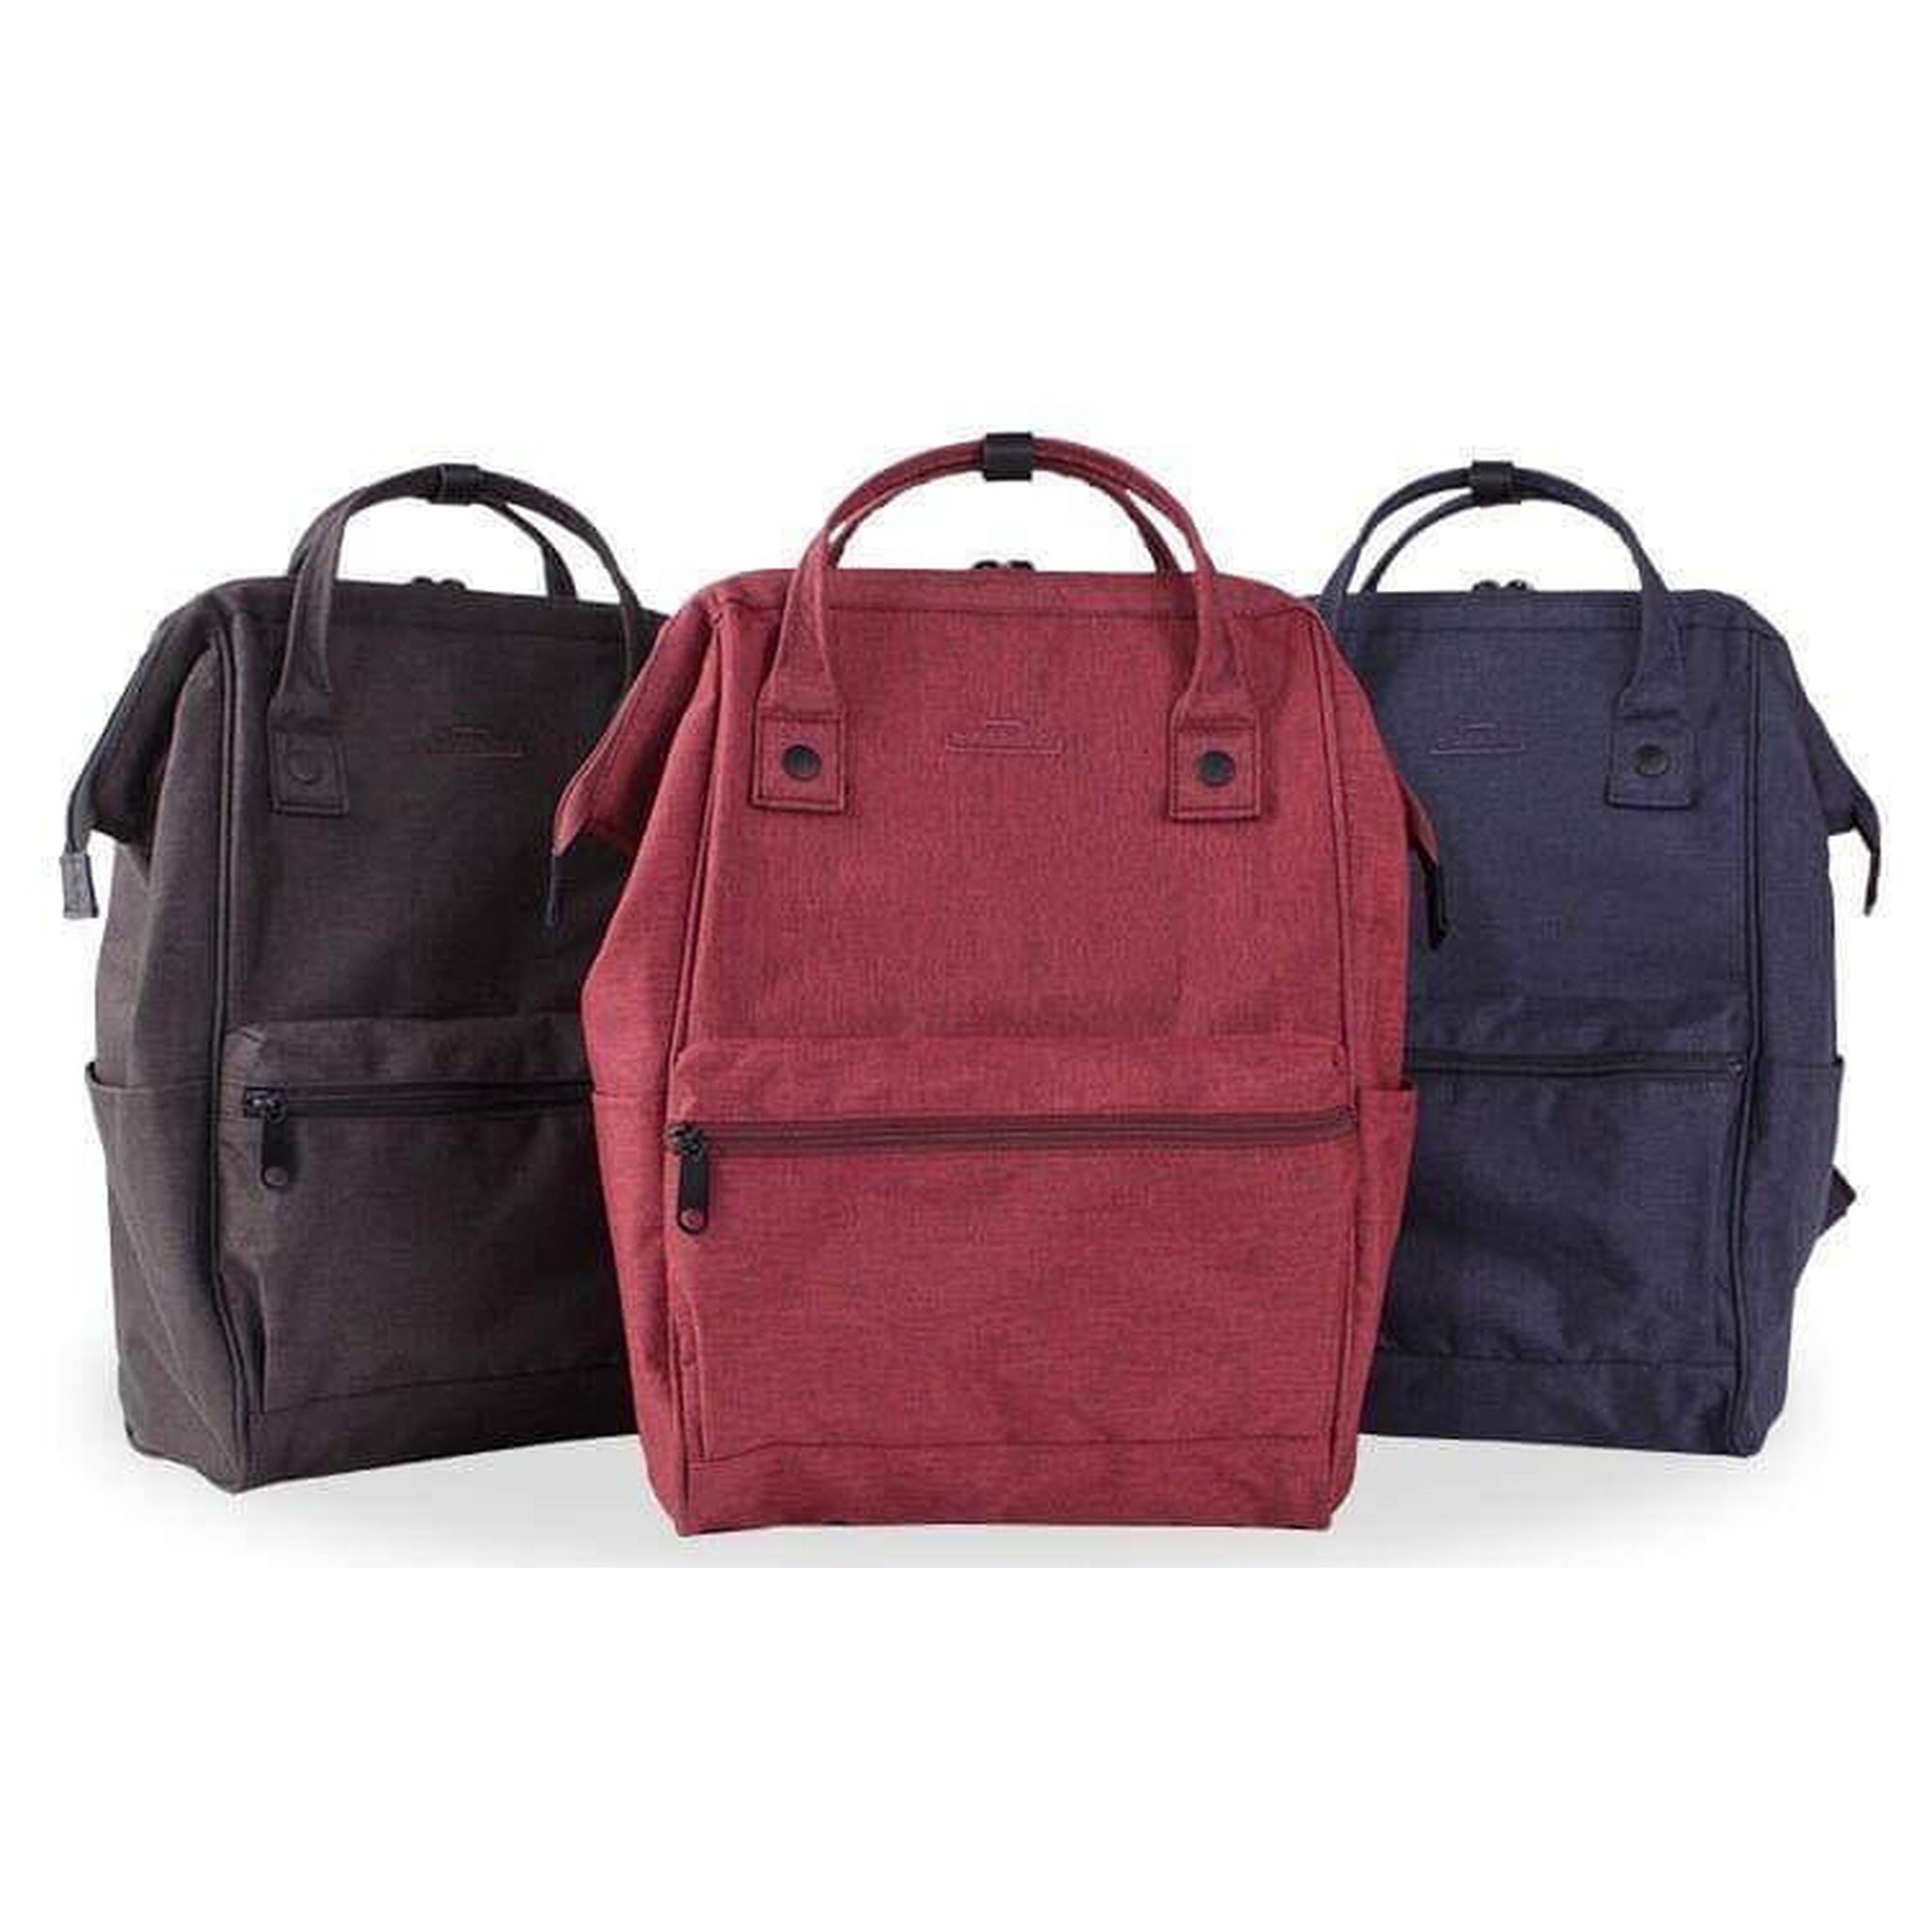 Original Brand - BAGS IN BAG